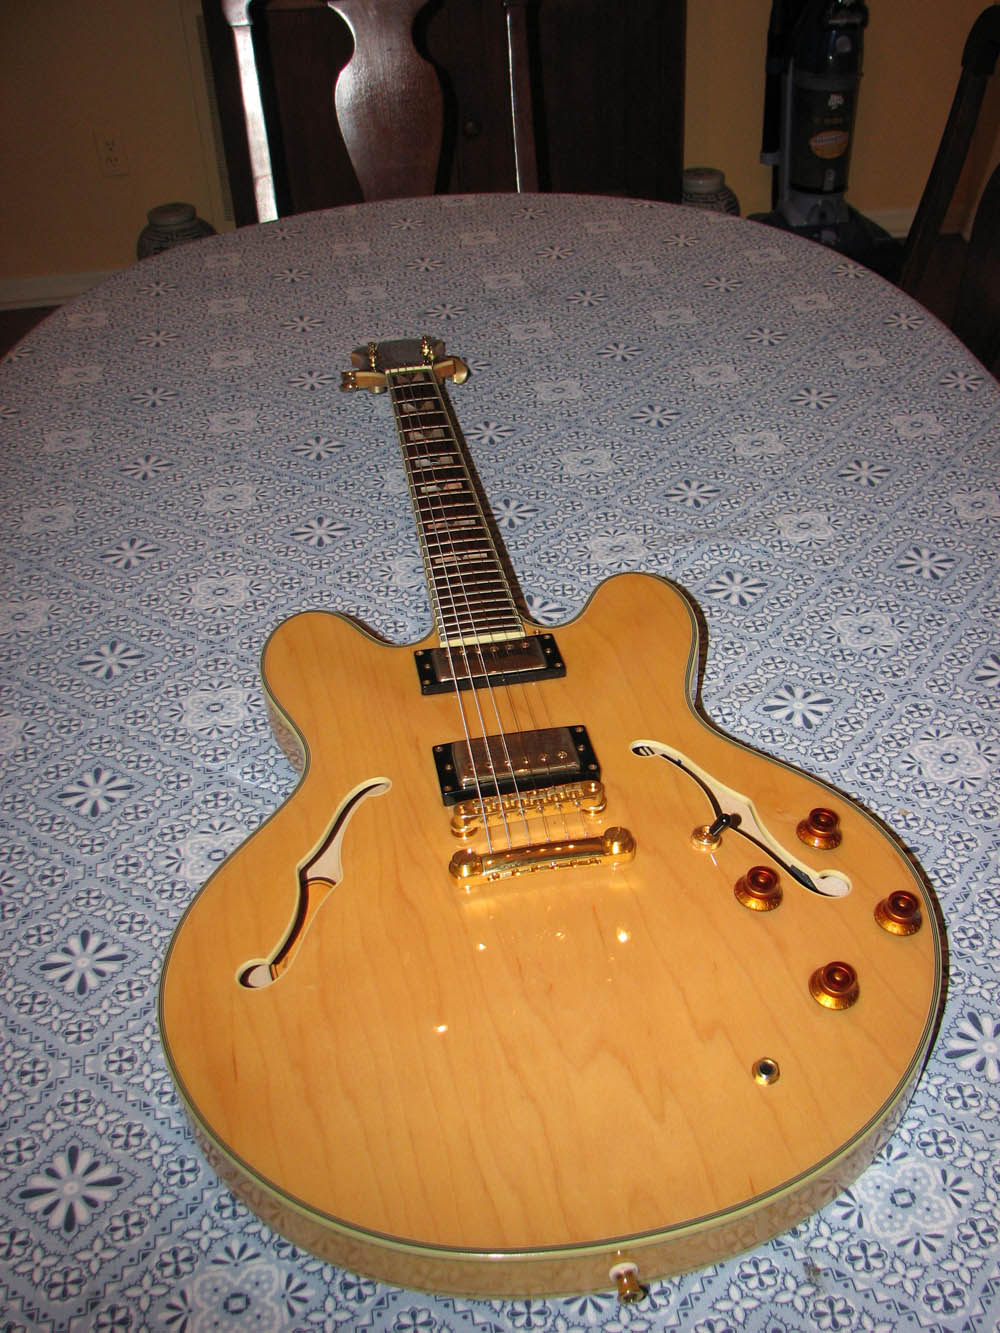 The Official November Spam Stuffing Thread Mmmmm Good Way Switch Neck Volume Bridge Tone Etc Here Agile Al3000 Guitar Comment